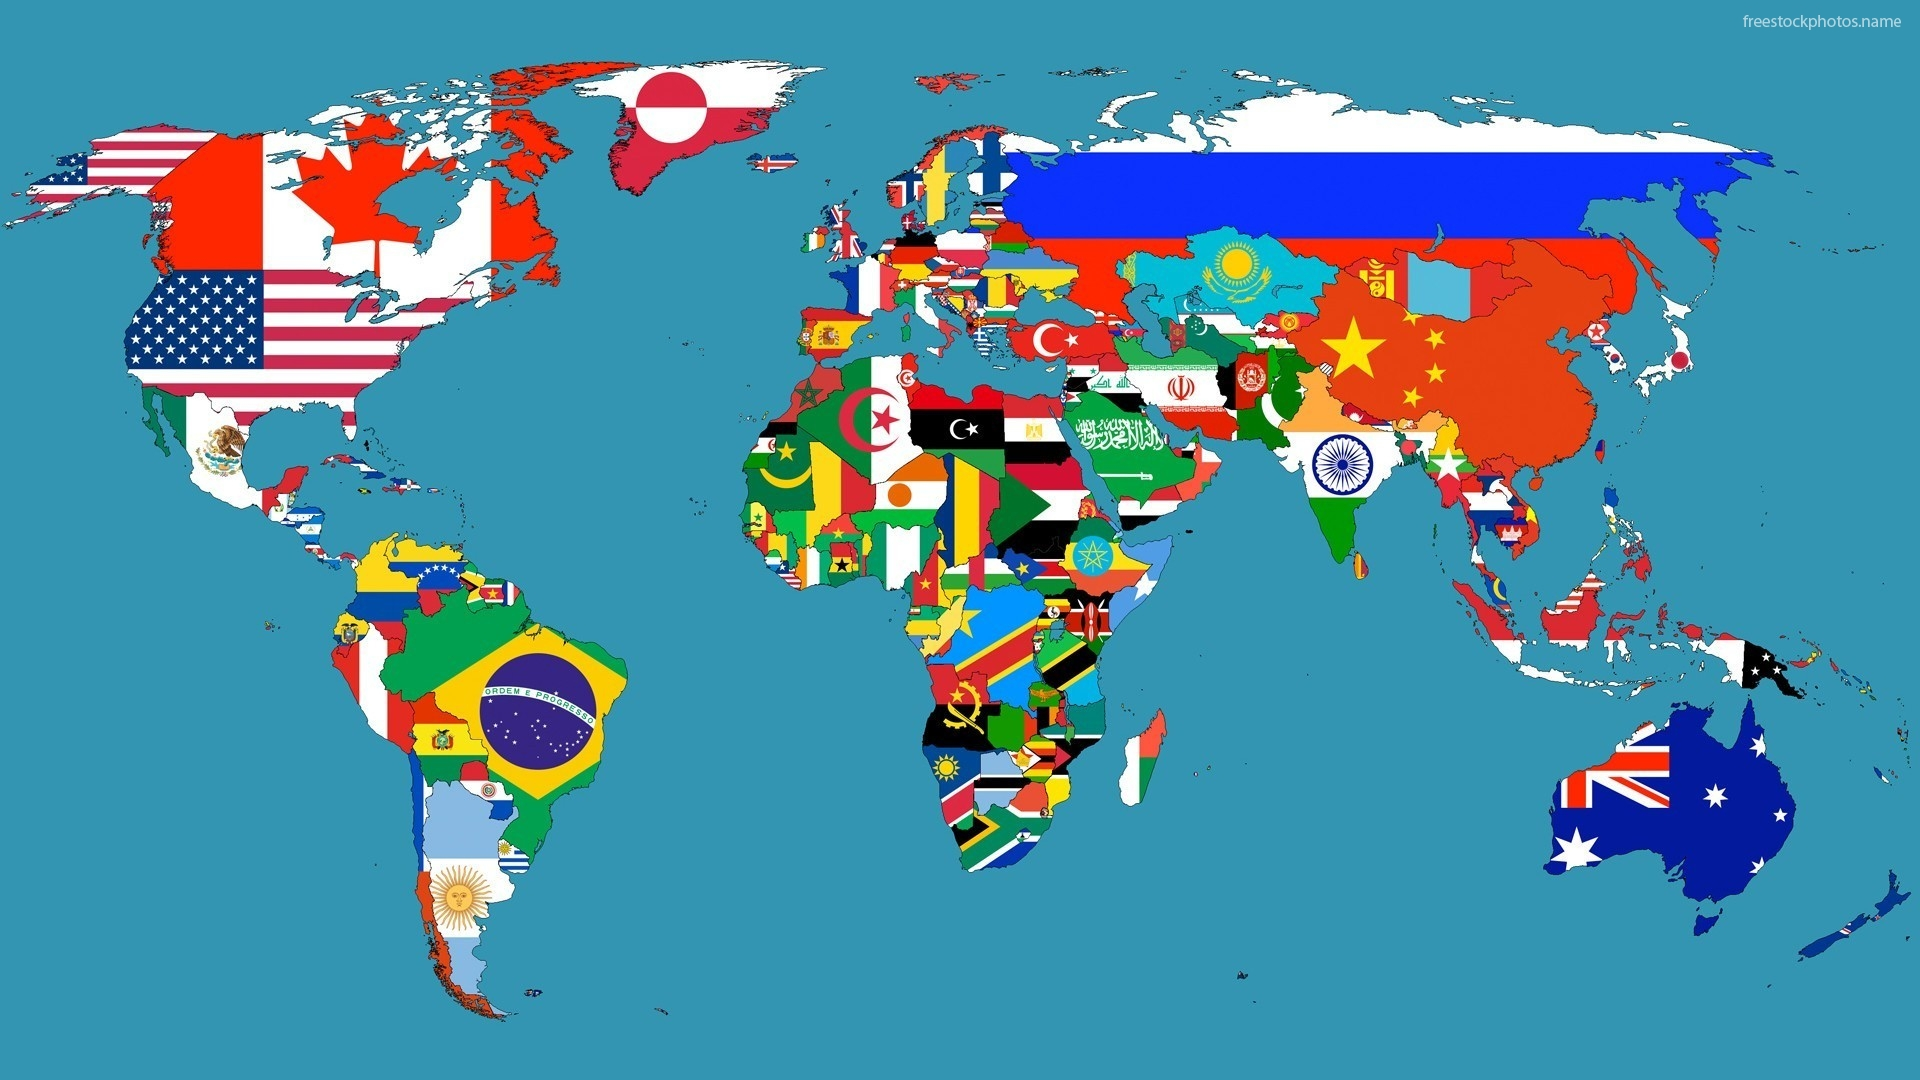 World flags wallpaper wallpapersafari download stock photos of country flags world map for download images 1920x1080 gumiabroncs Gallery